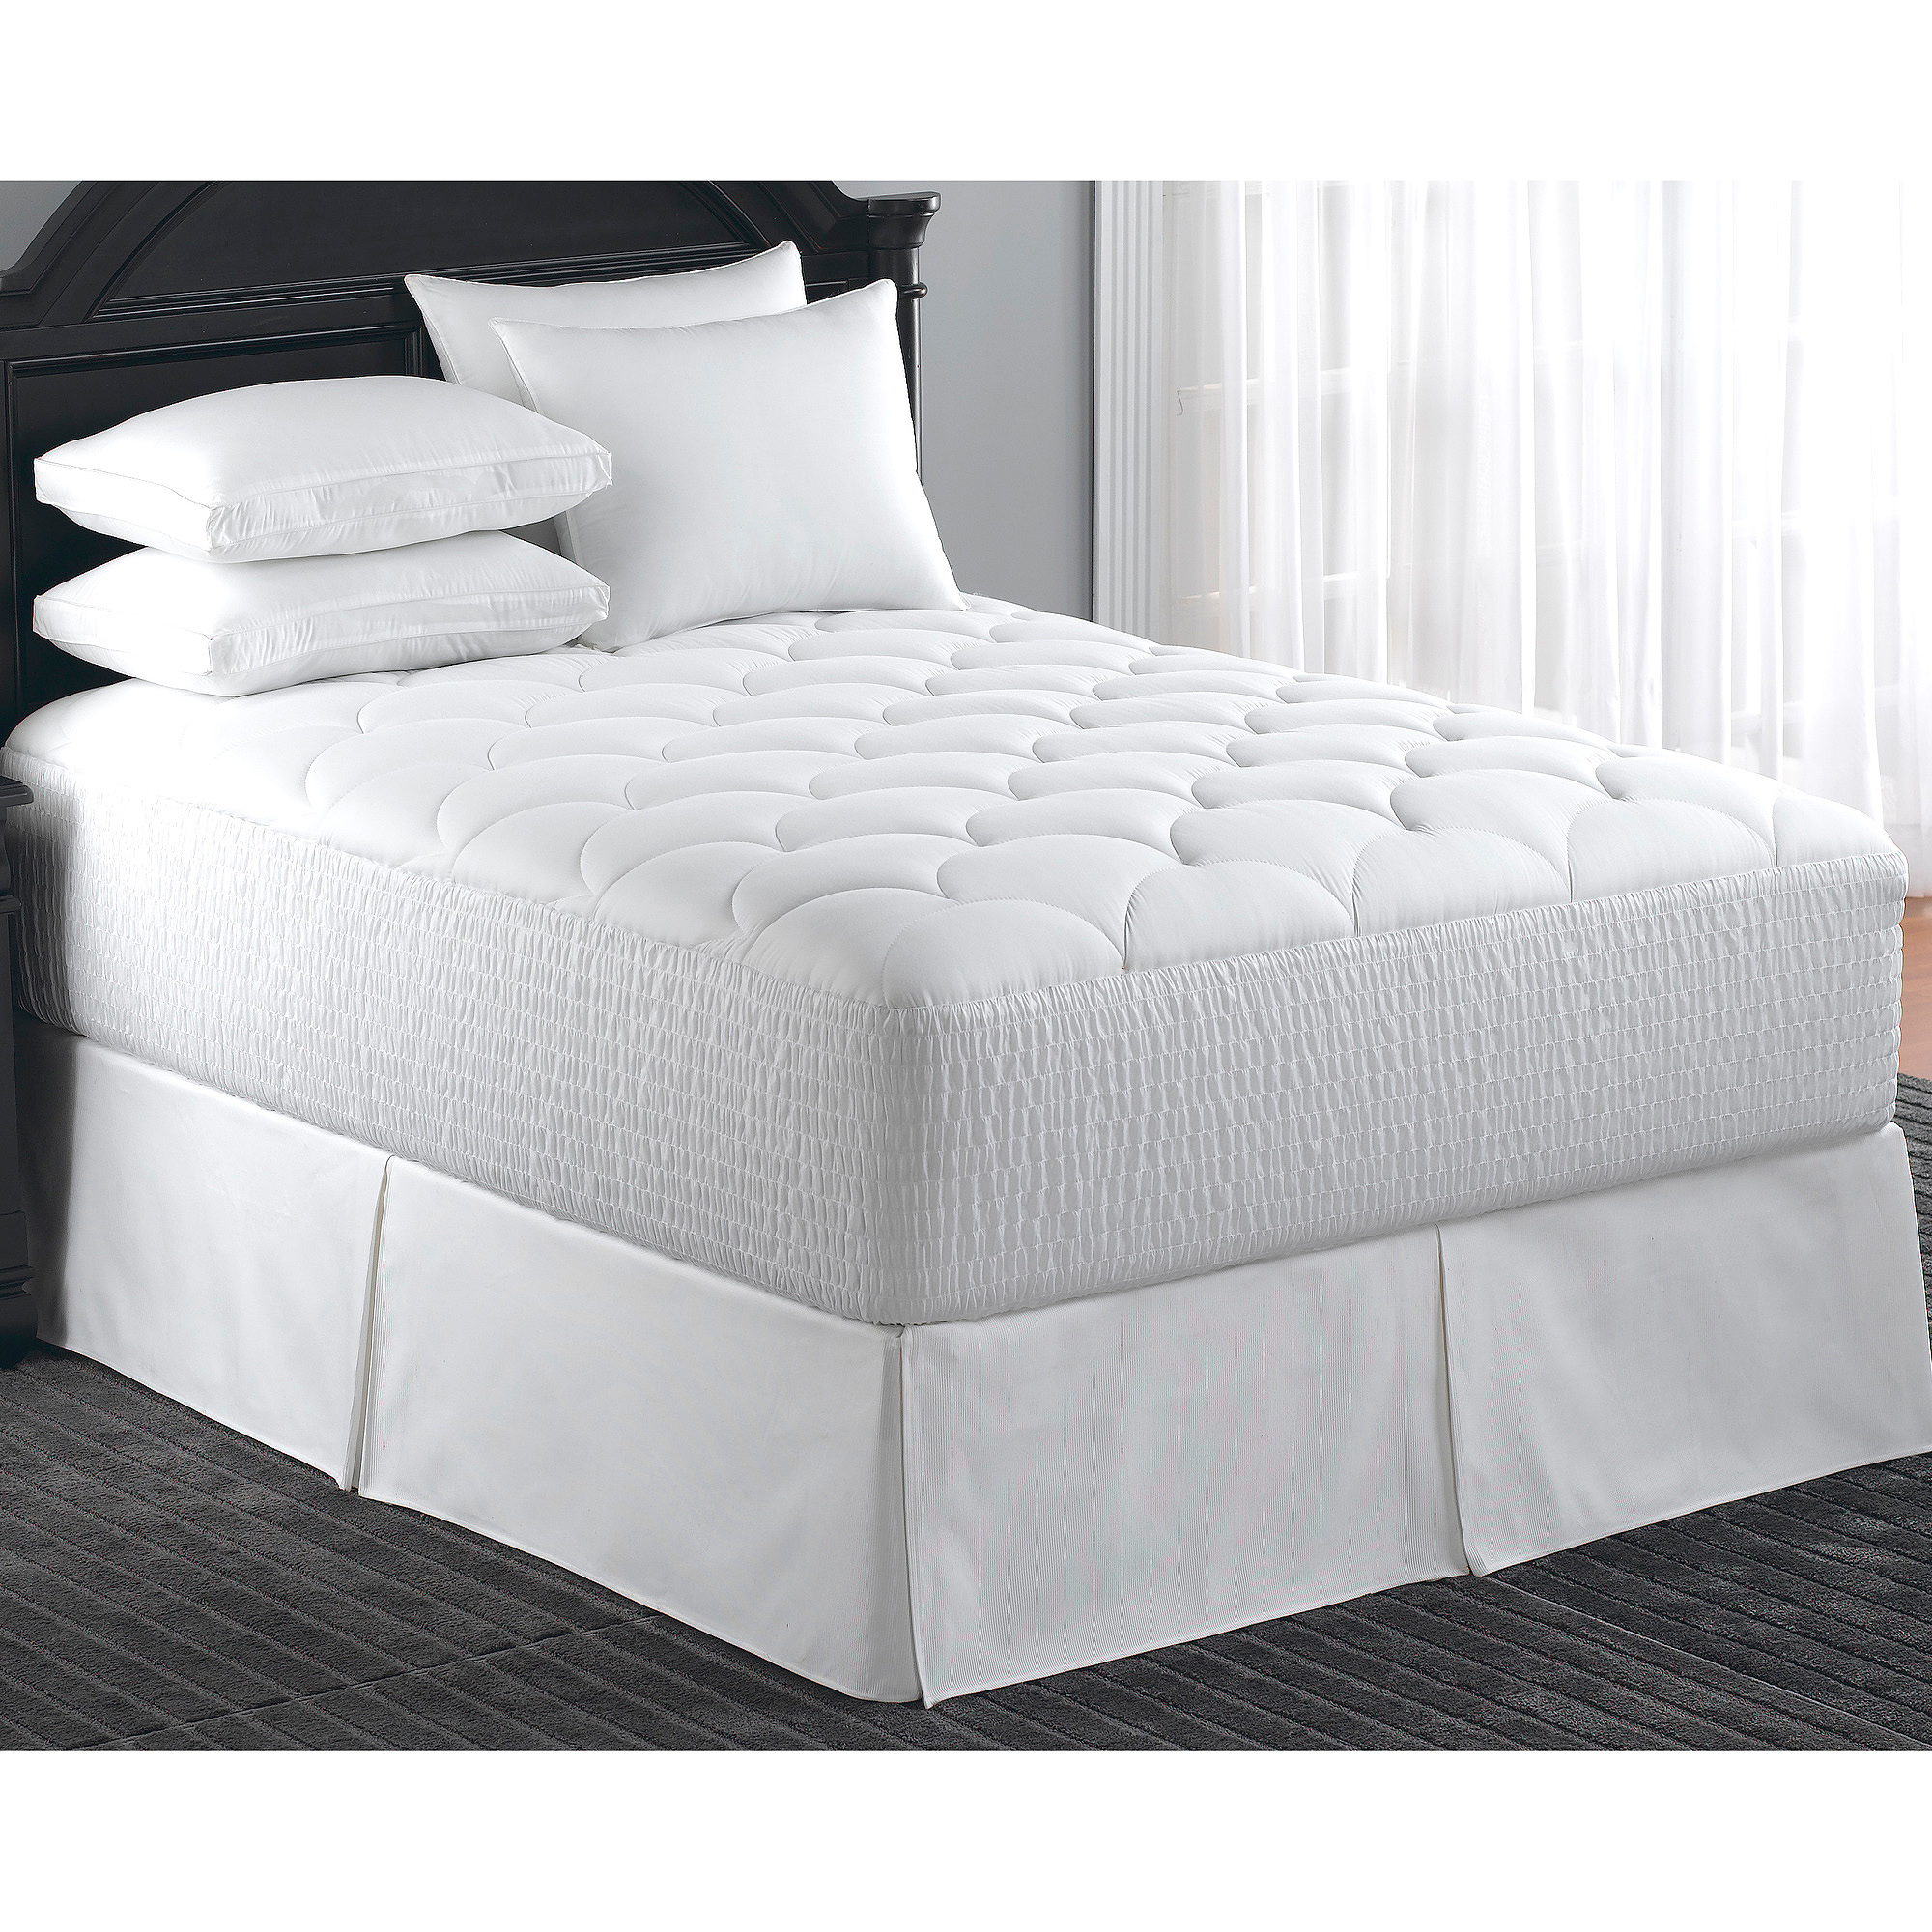 Beautyrest Hotel Luxury Pillow Top Mattress Pad in Mulitple Sizes